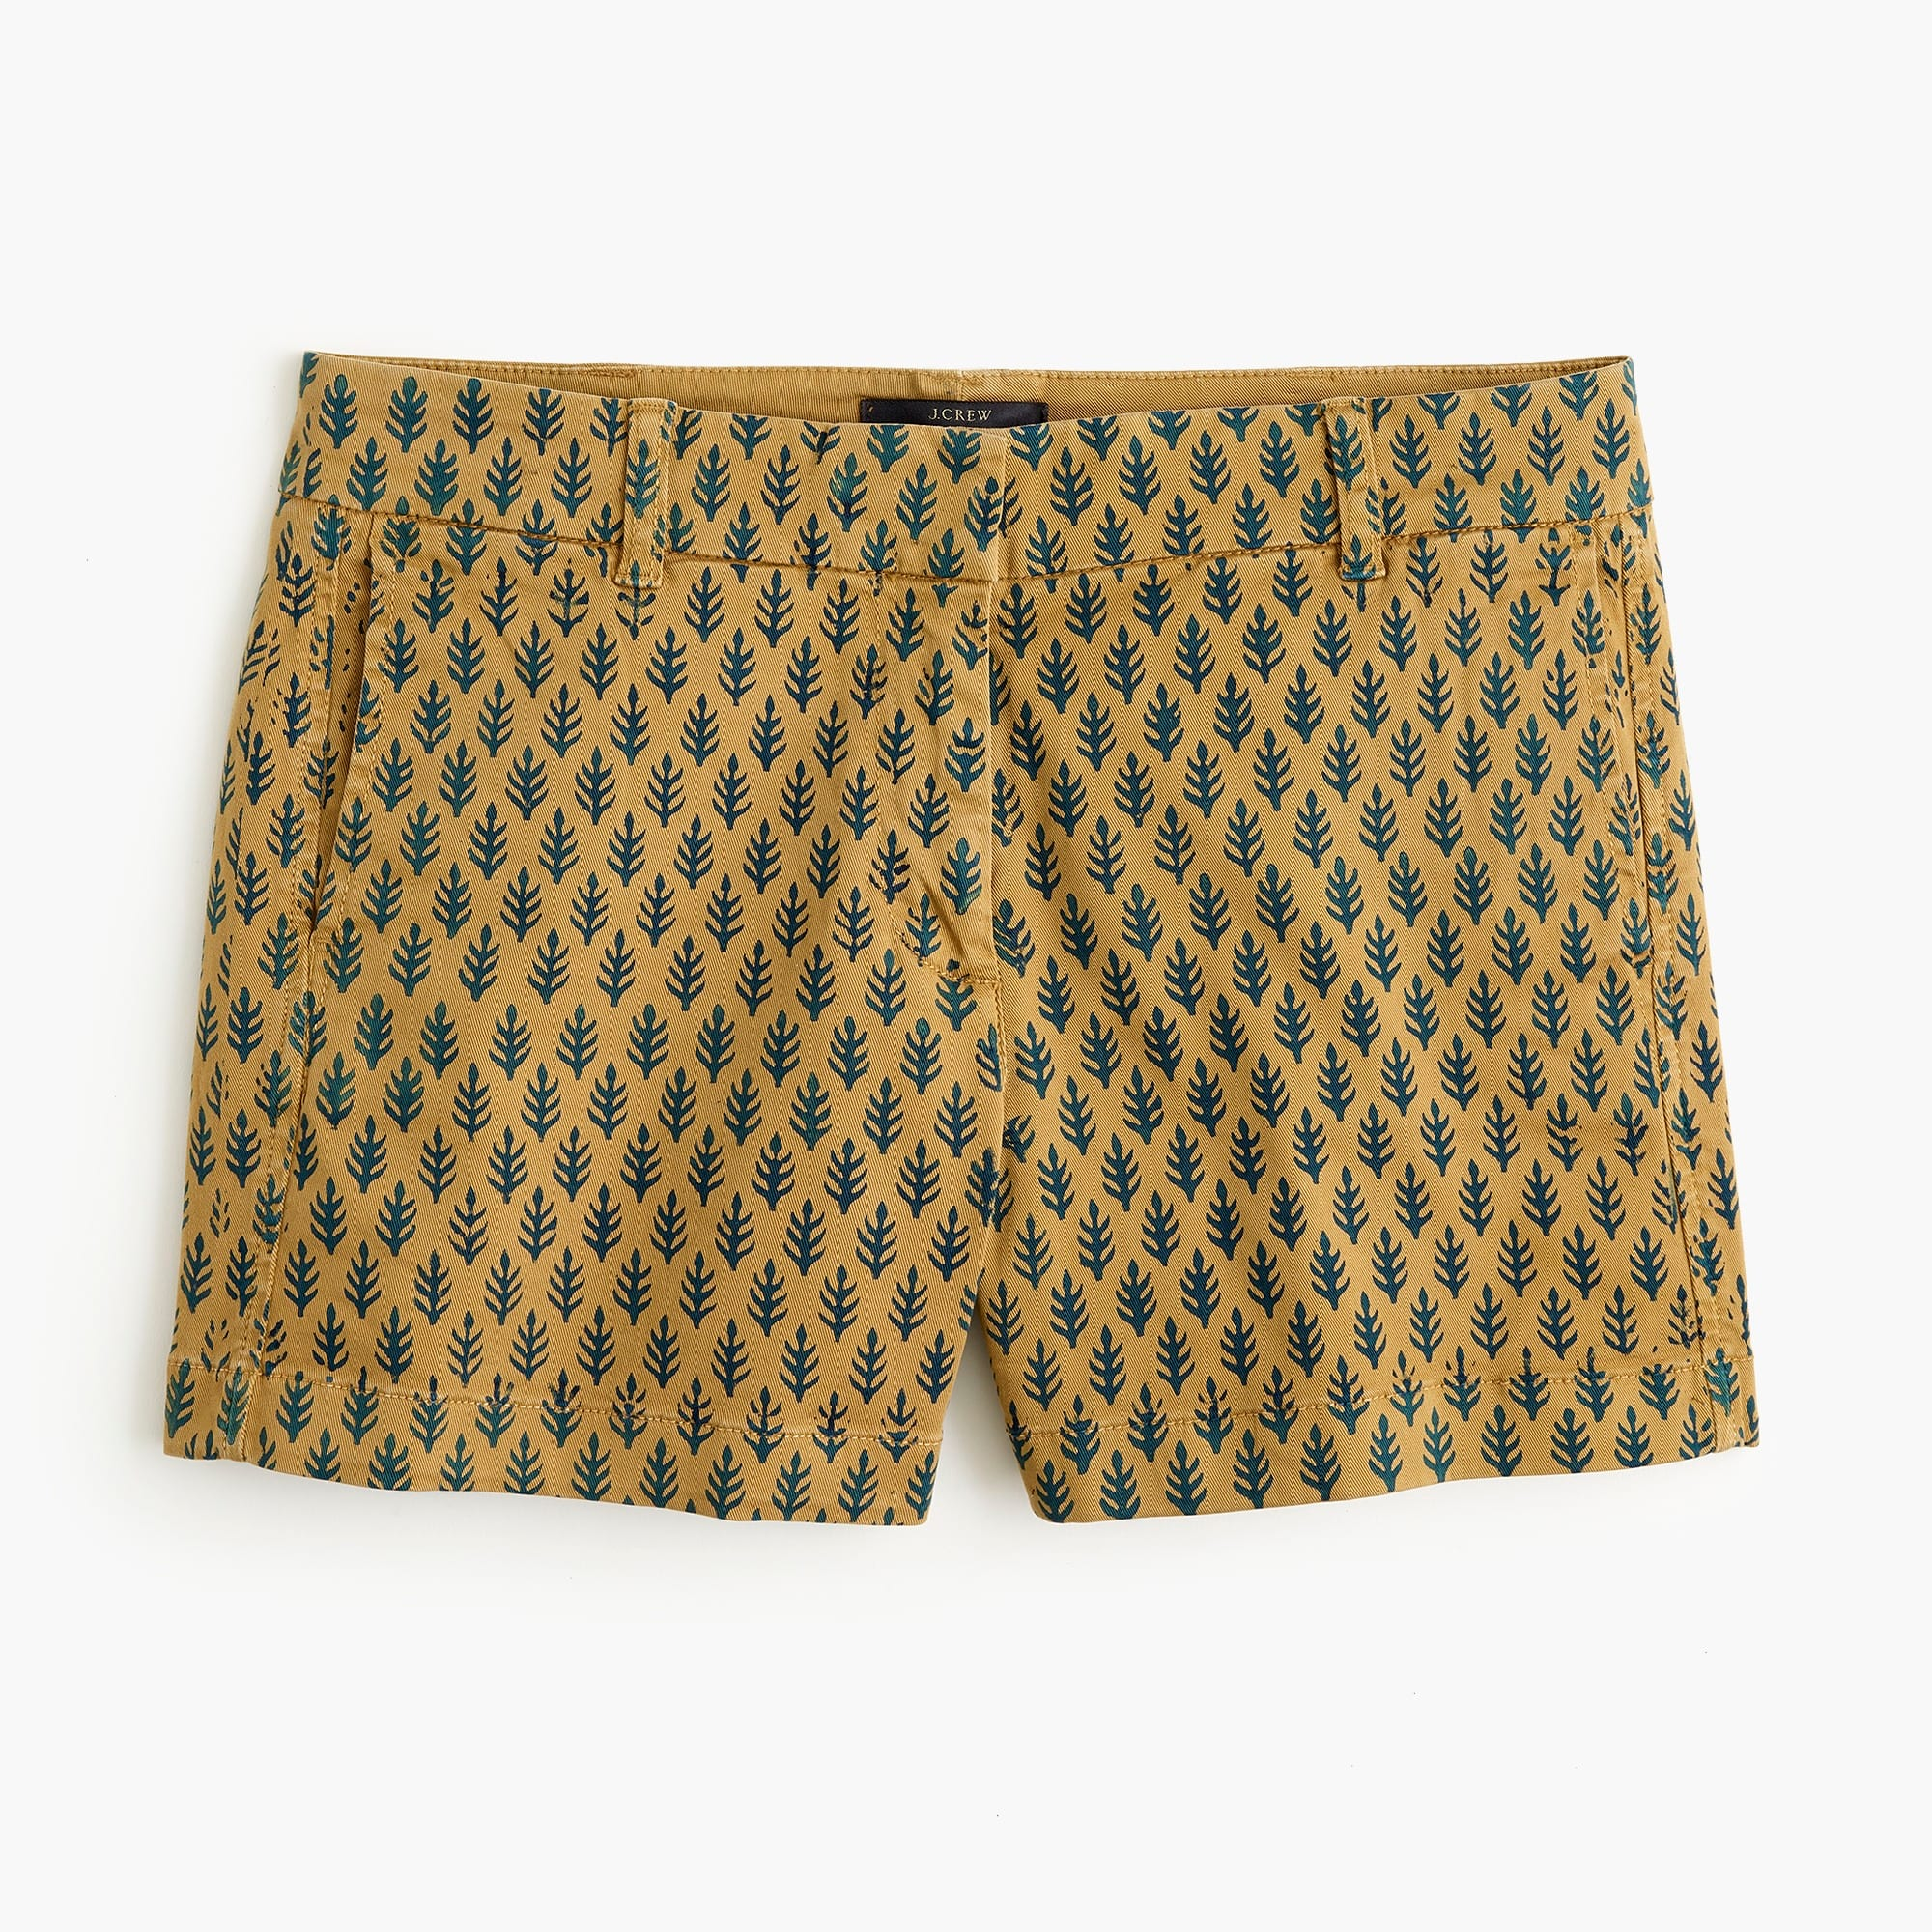 SZ Blockprints™ for J.Crew chino short in Neon Patti Leaf